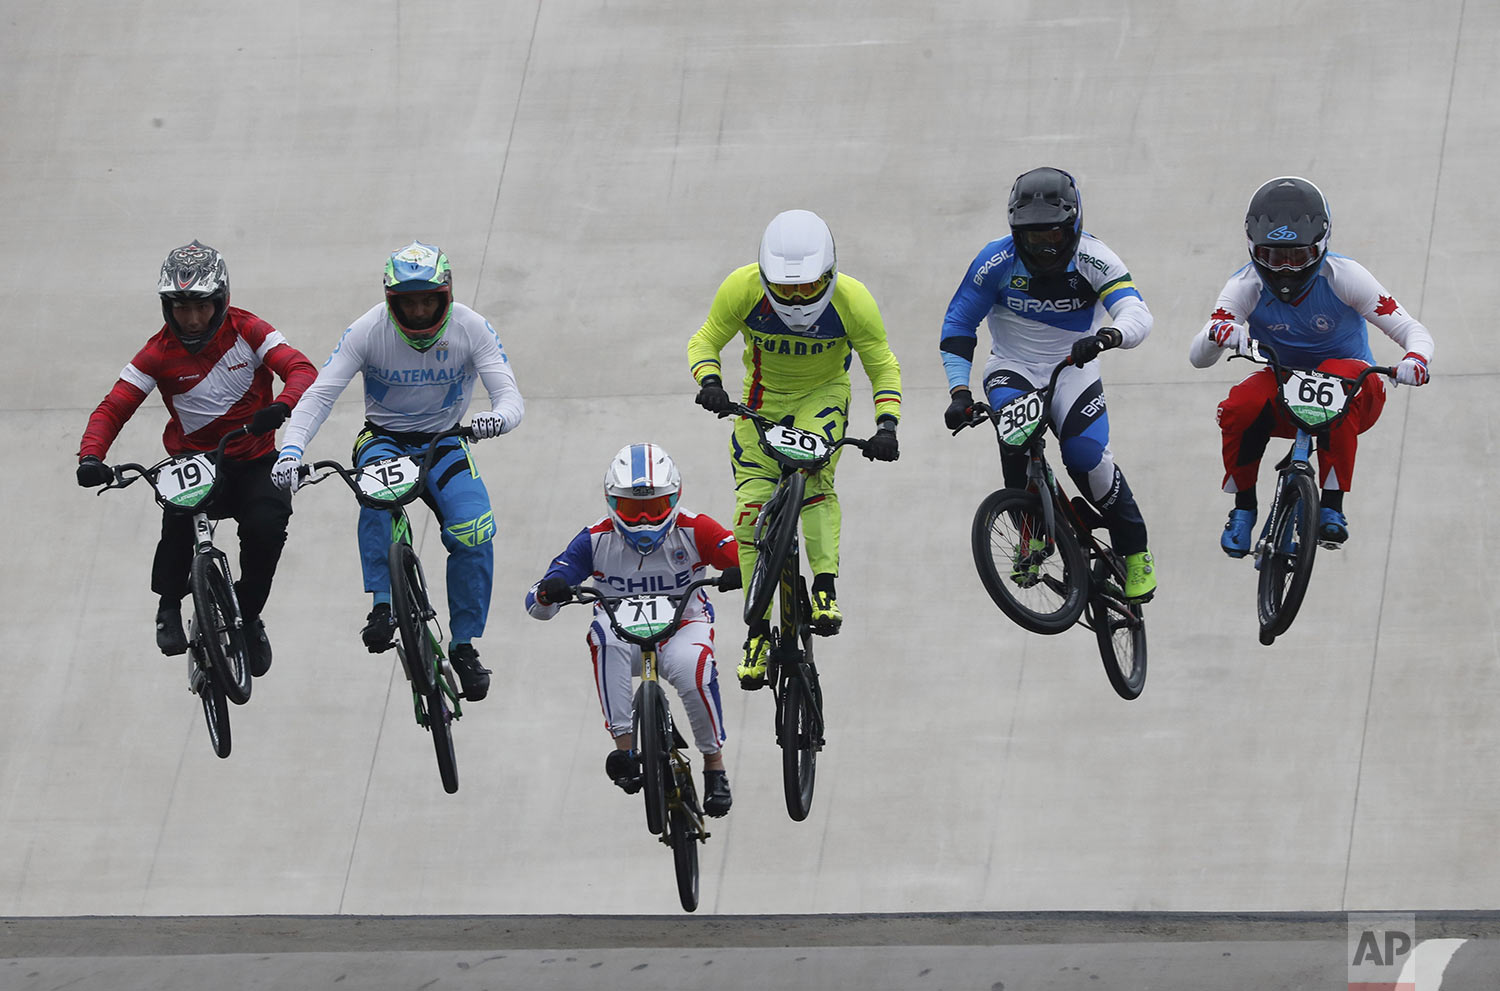 Athletes compete in men's cycling bmx semi-final at the Pan American Games in Lima, Peru, Friday, Aug. 9, 2019. (AP Photo/Fernando Llano)